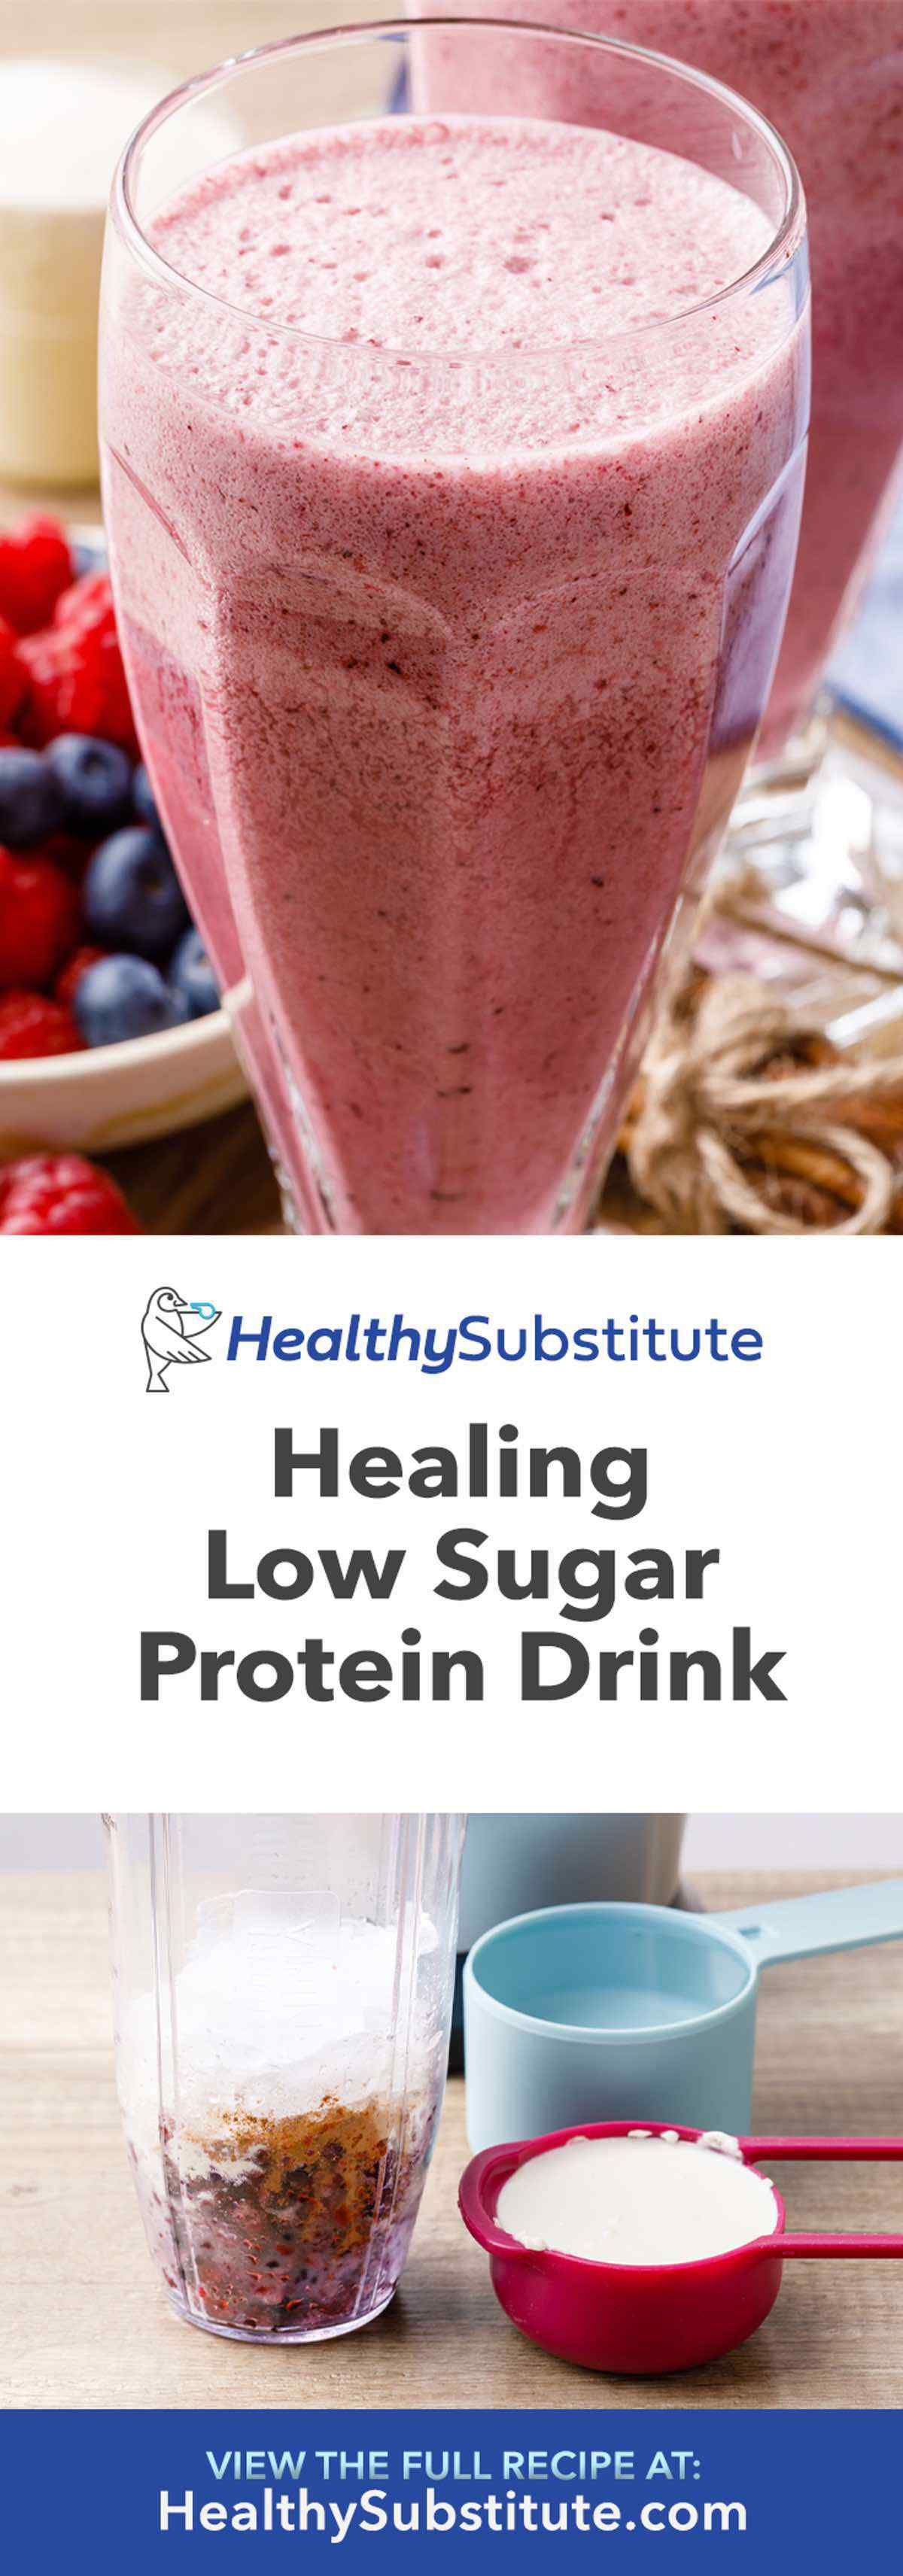 Low Sugar Protein Drink